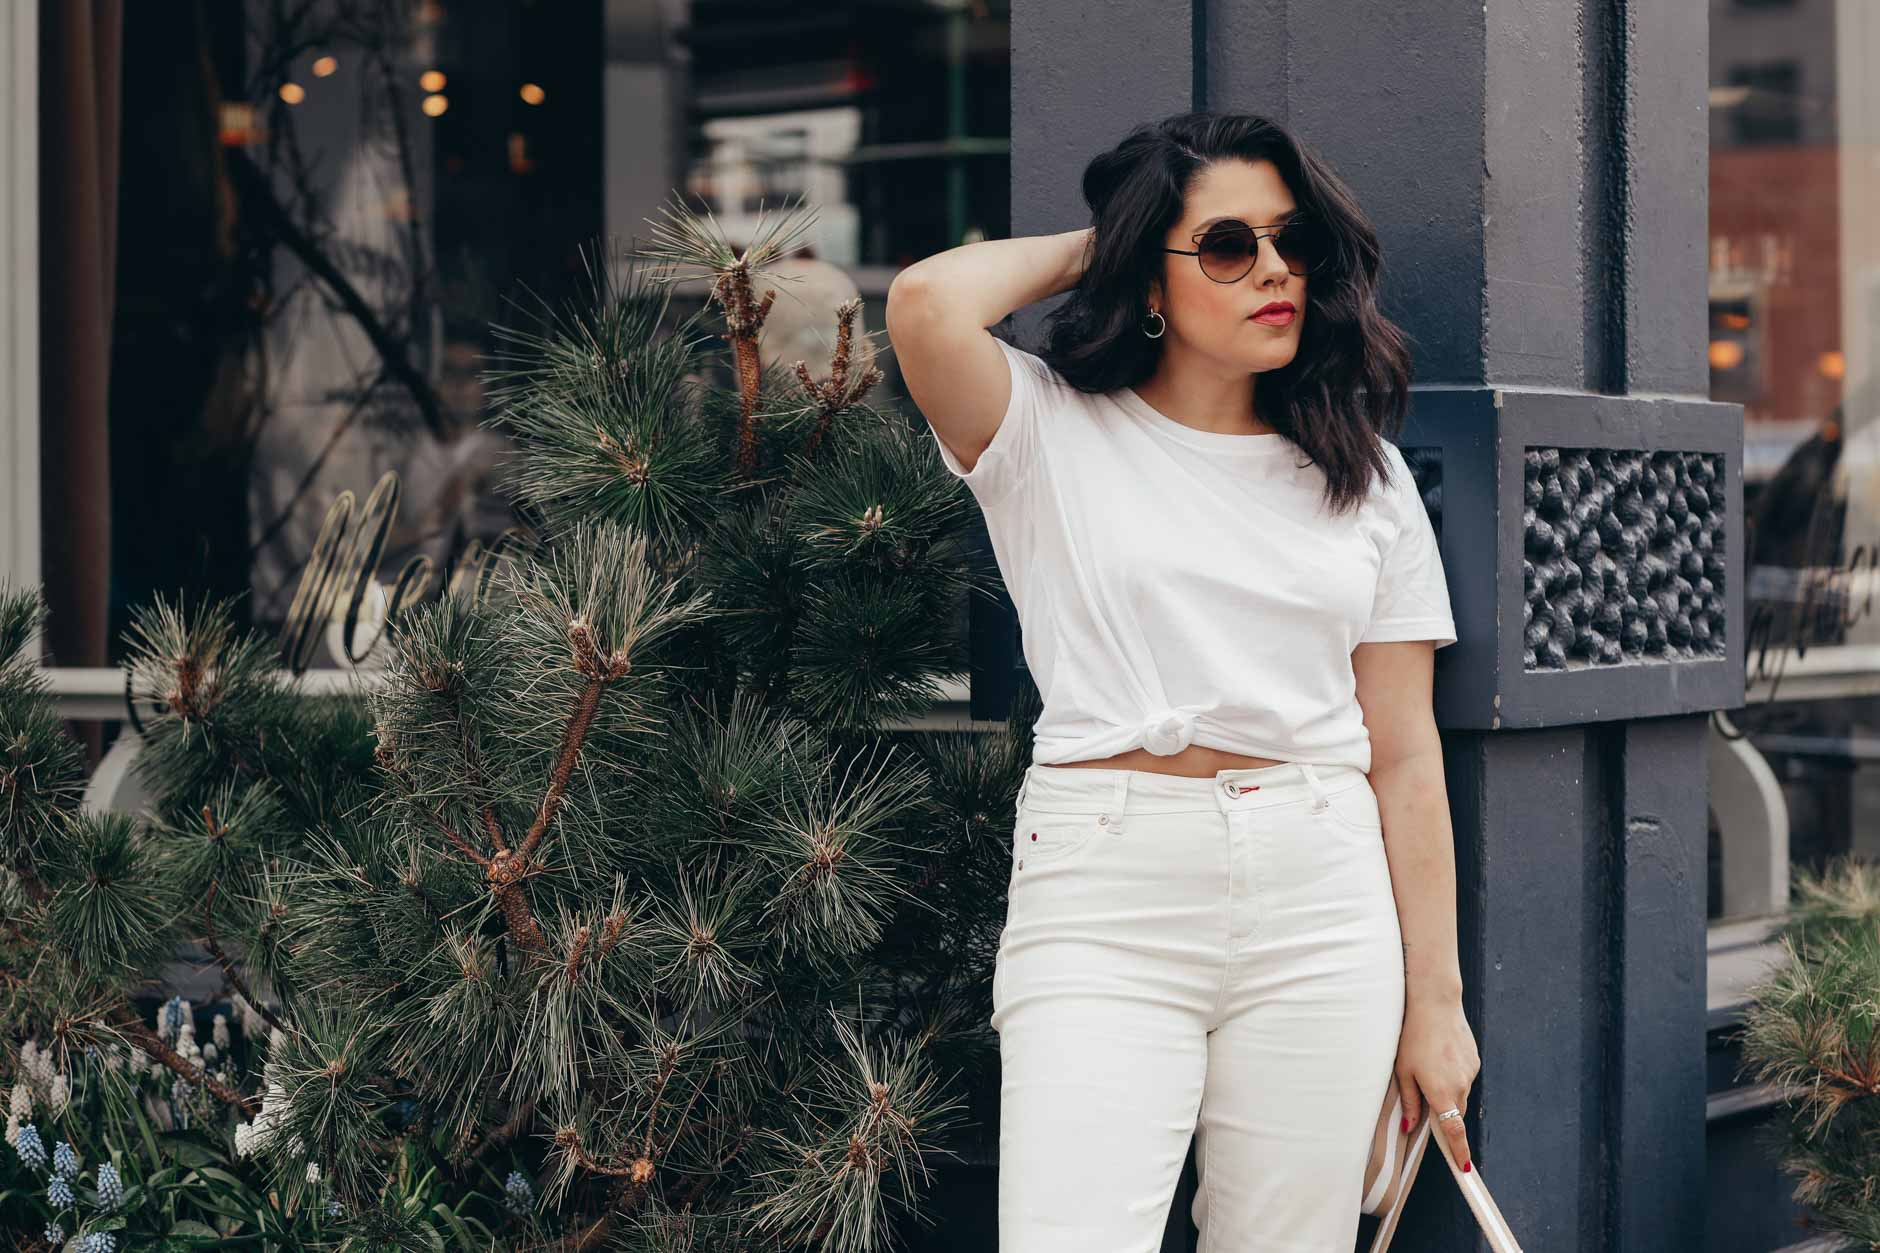 naty michele in a white knotted tee for we dress america